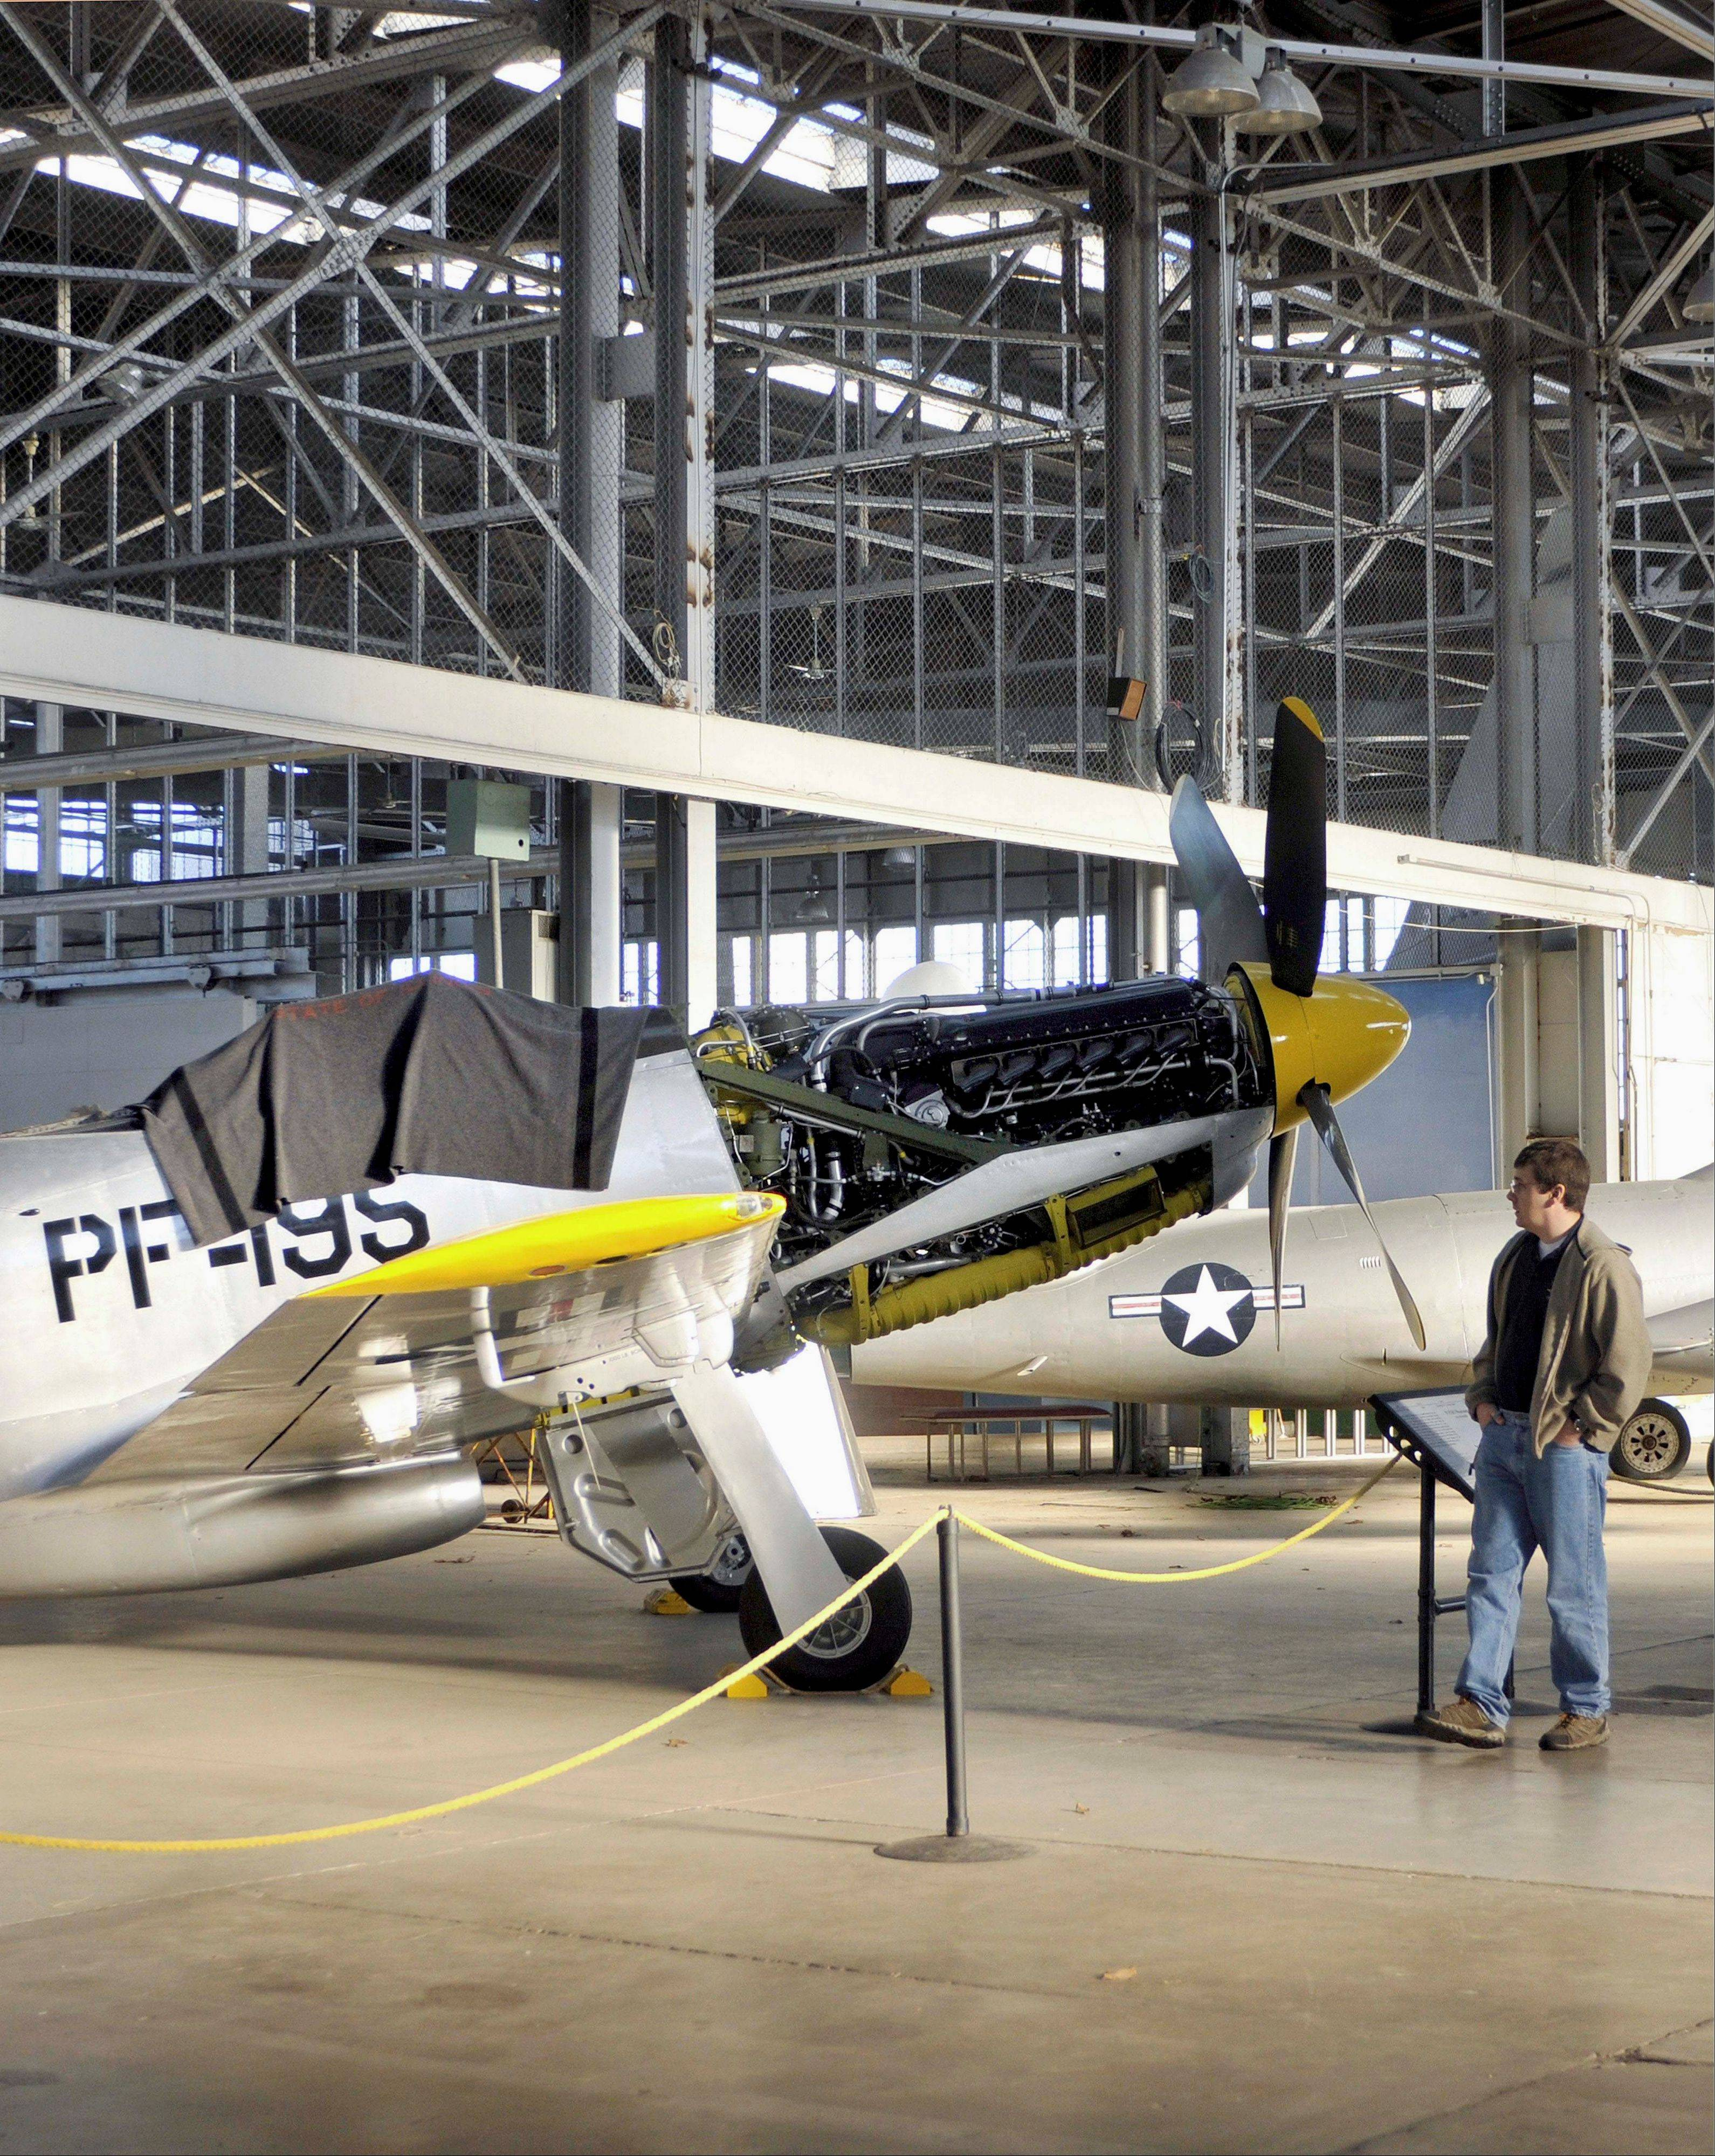 Mark Hanson, curator of the Chanute Air Museum in Rantoul looks over a P-51H Mustang, which is currently being restored at the museum's hangar.